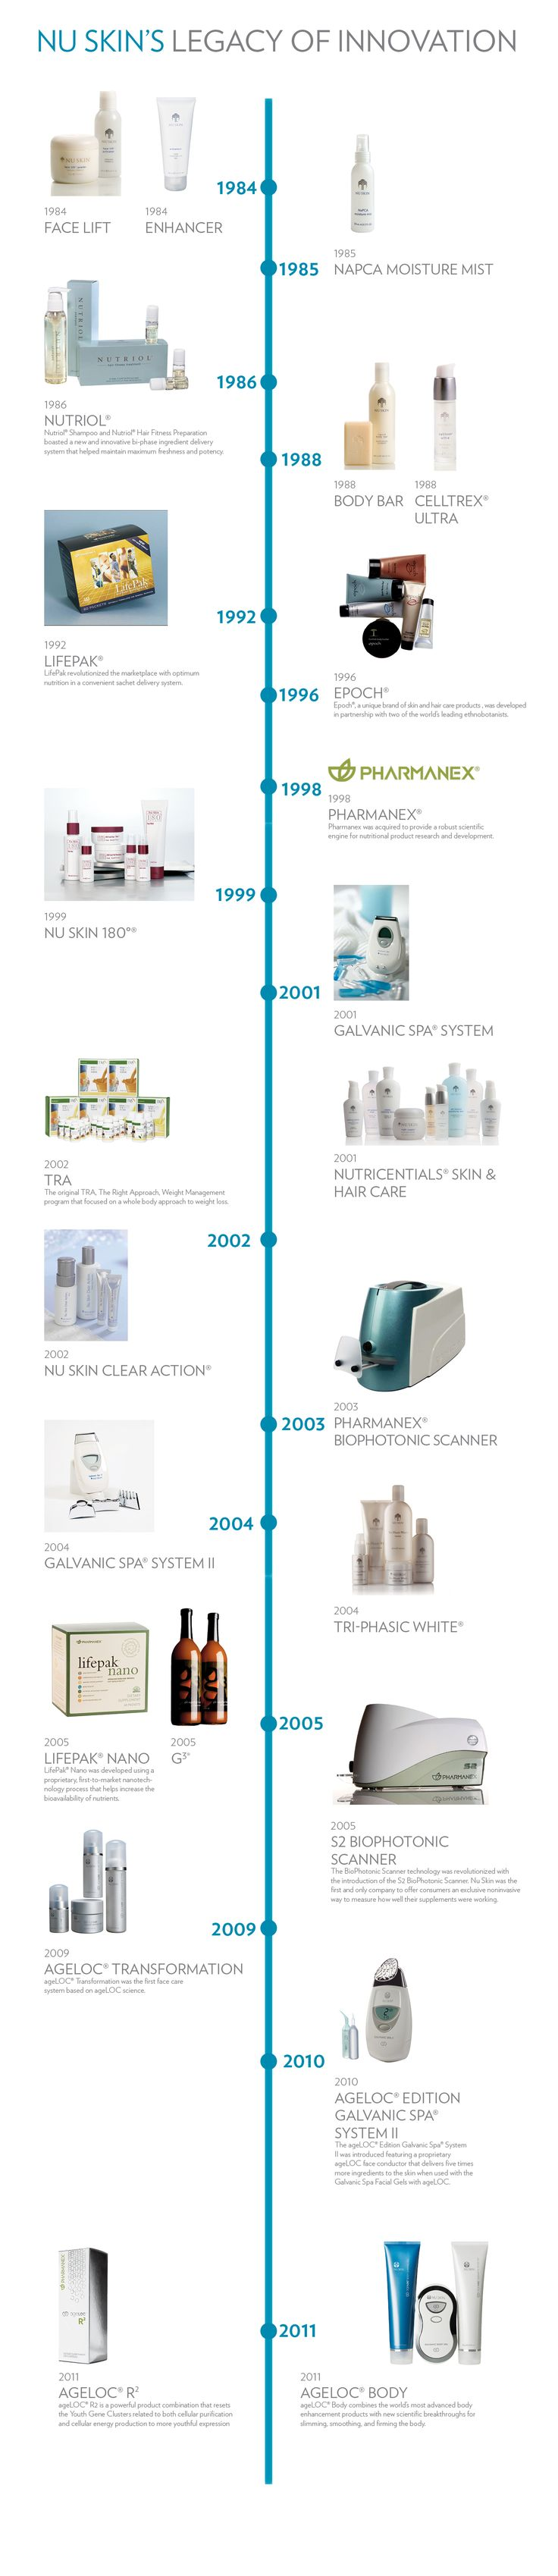 Nu Skin's Legacy of Innovation (www.nuskin.com/thesource